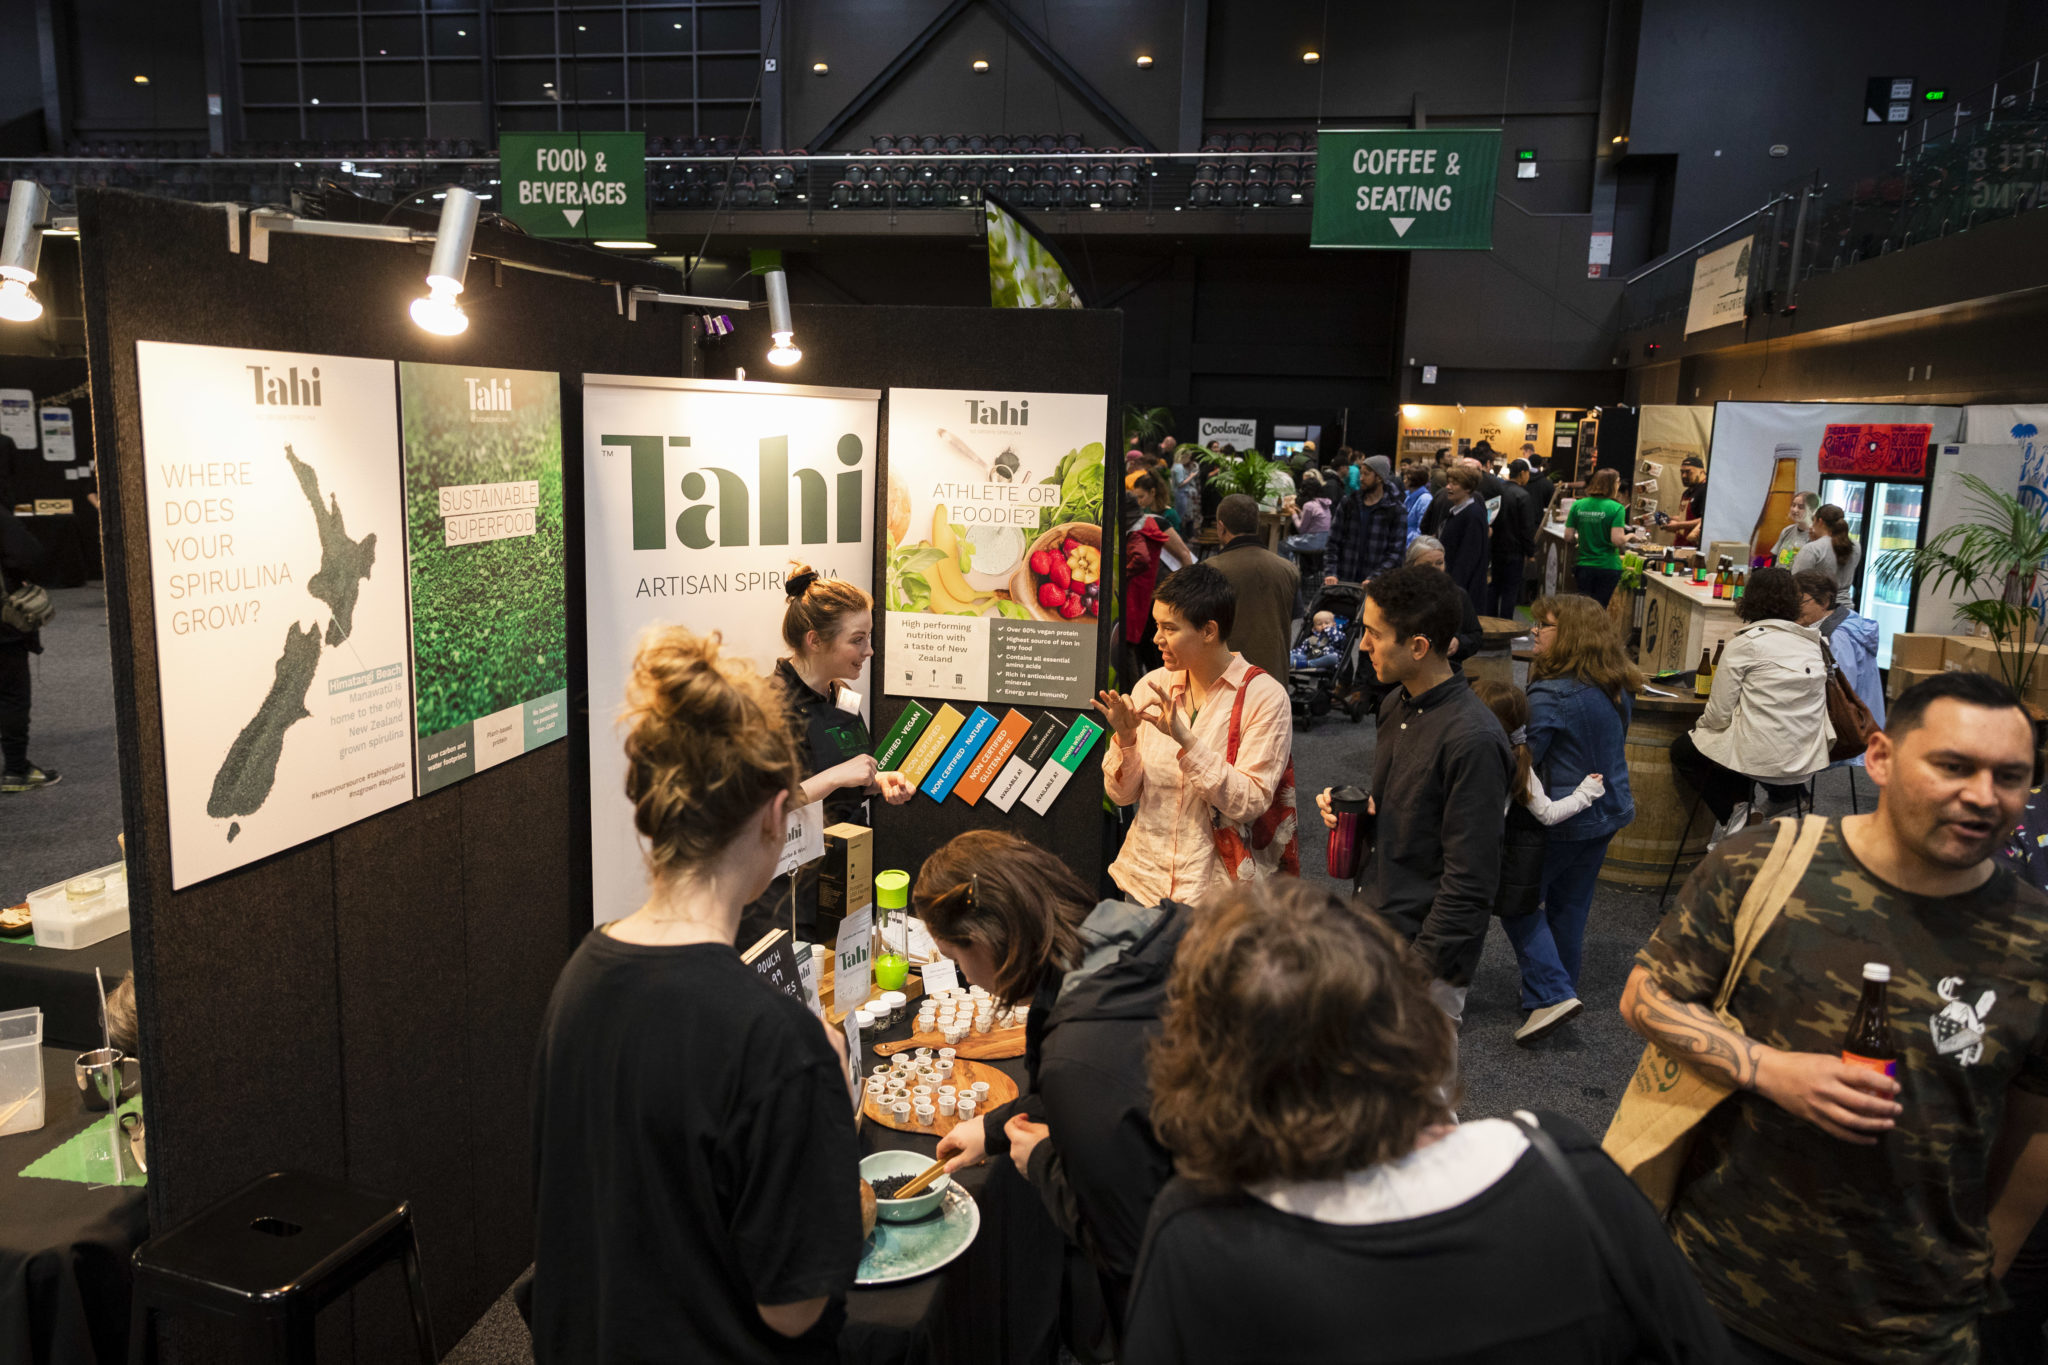 People tasting spirulina at expo